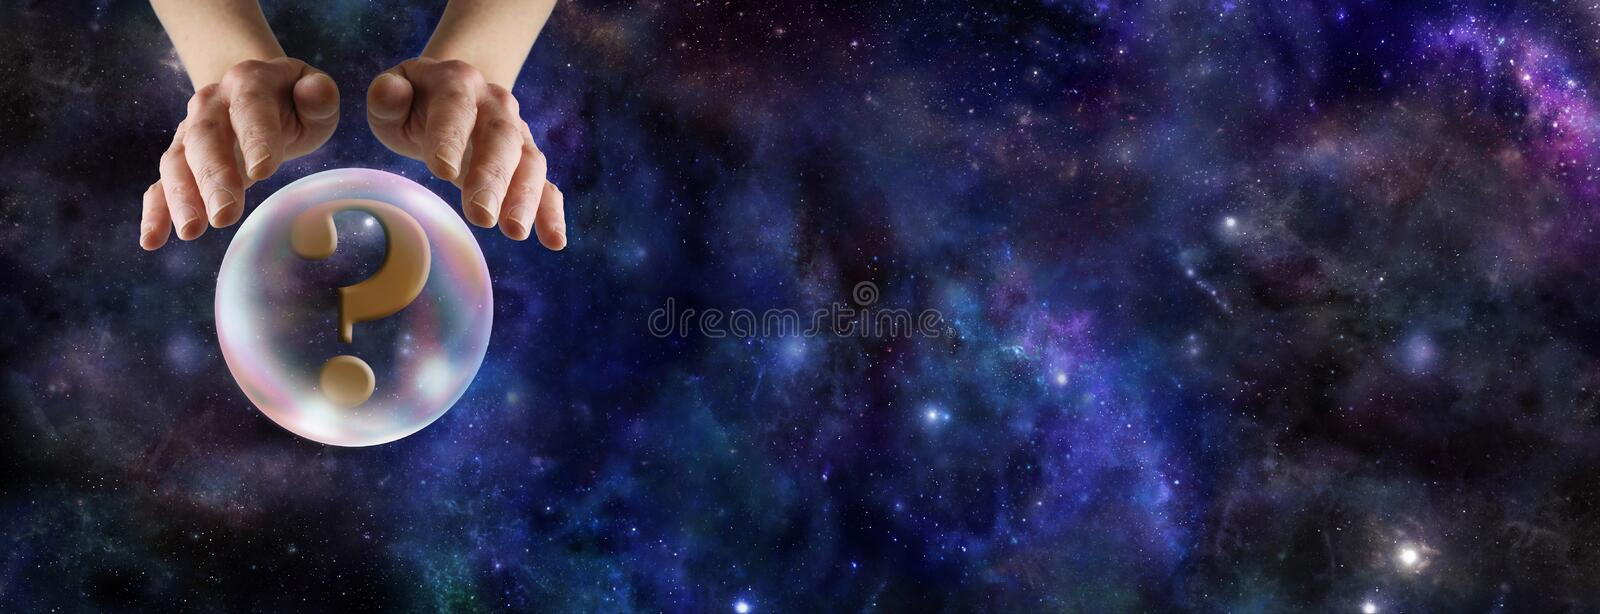 What does the Crystal Ball Reveal royalty free stock image